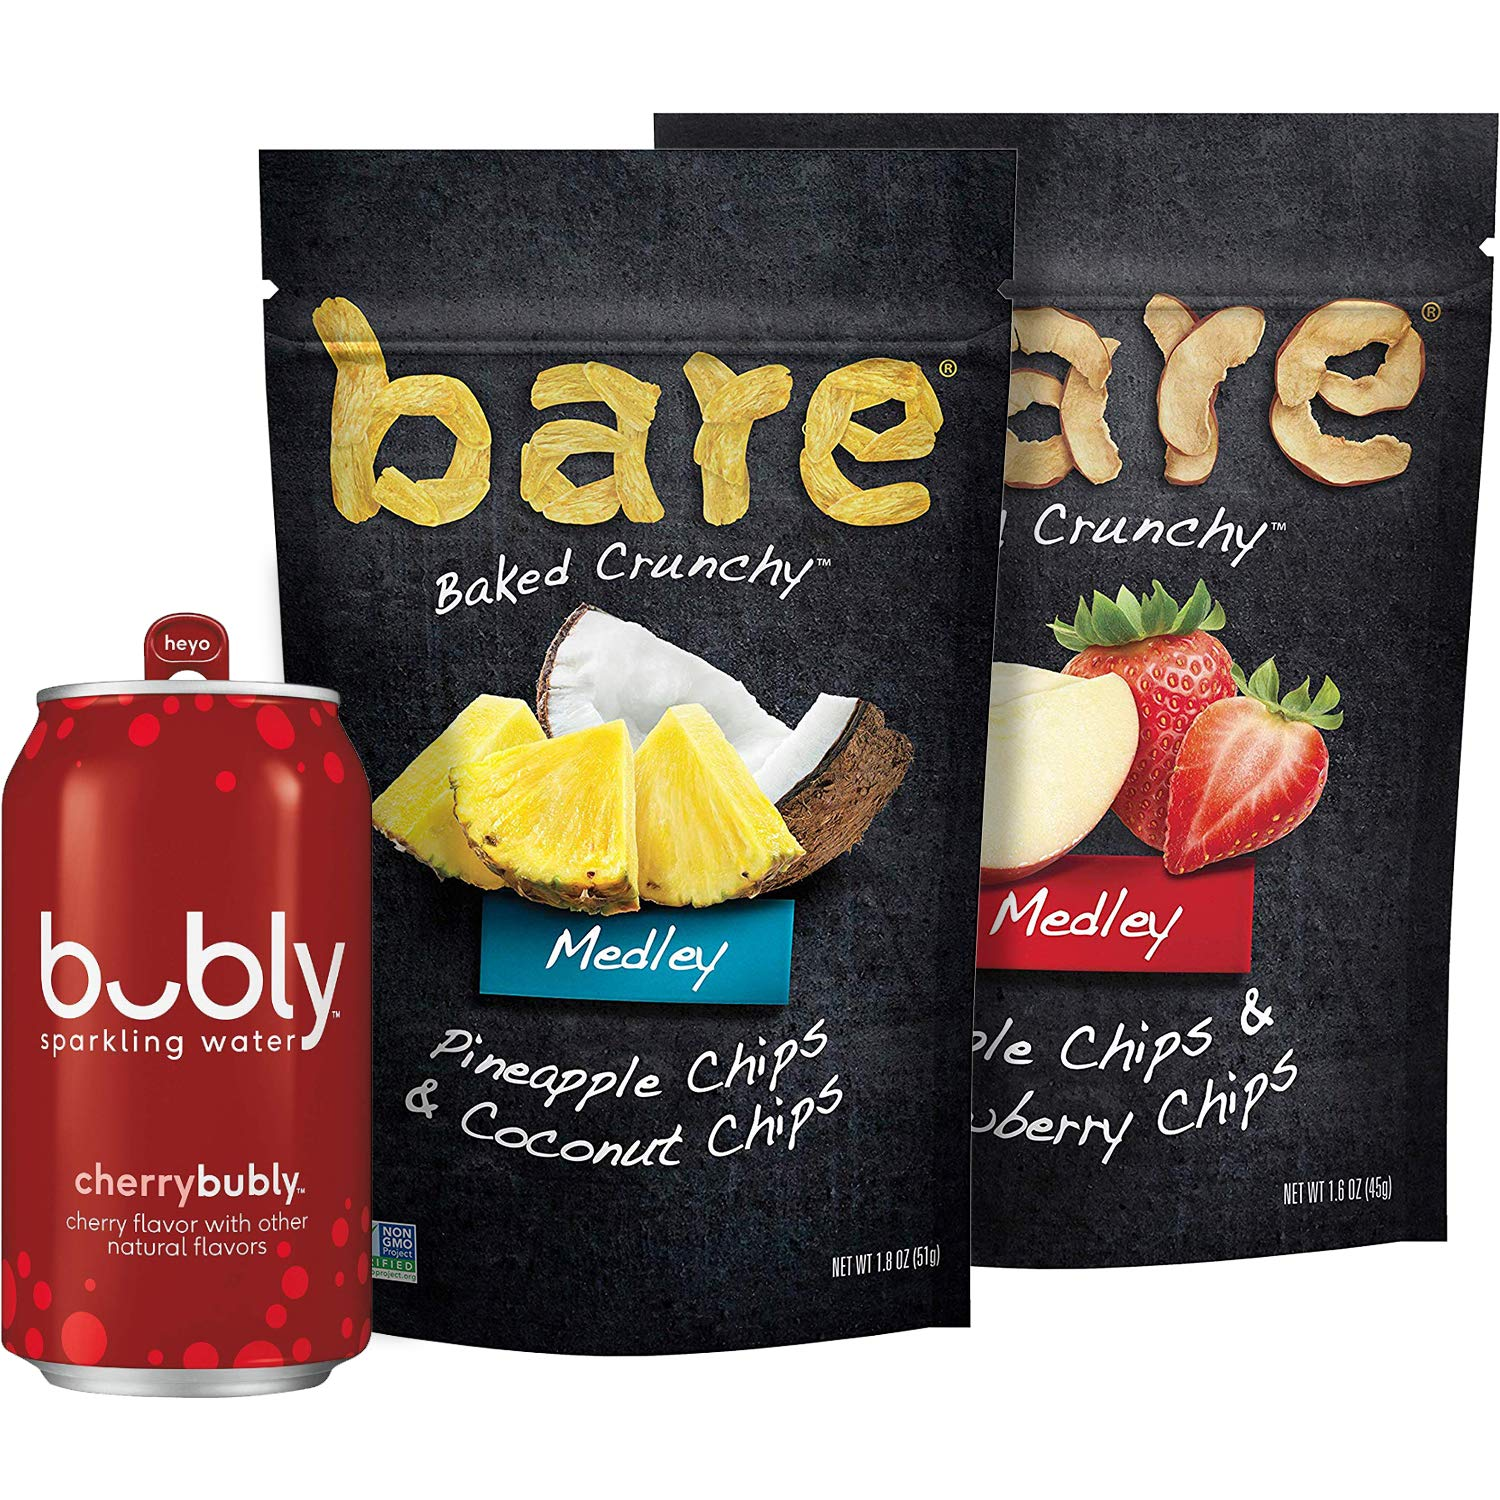 Bubly Sparkling Water, Cherry with Bare Medleys, Variety Pack - (Includes 18 12oz cans of Cherry bubly, 3 bags of Pineapple Coconut Bare Medleys and 3 bags of Apple Strawberry Bare Medleys)